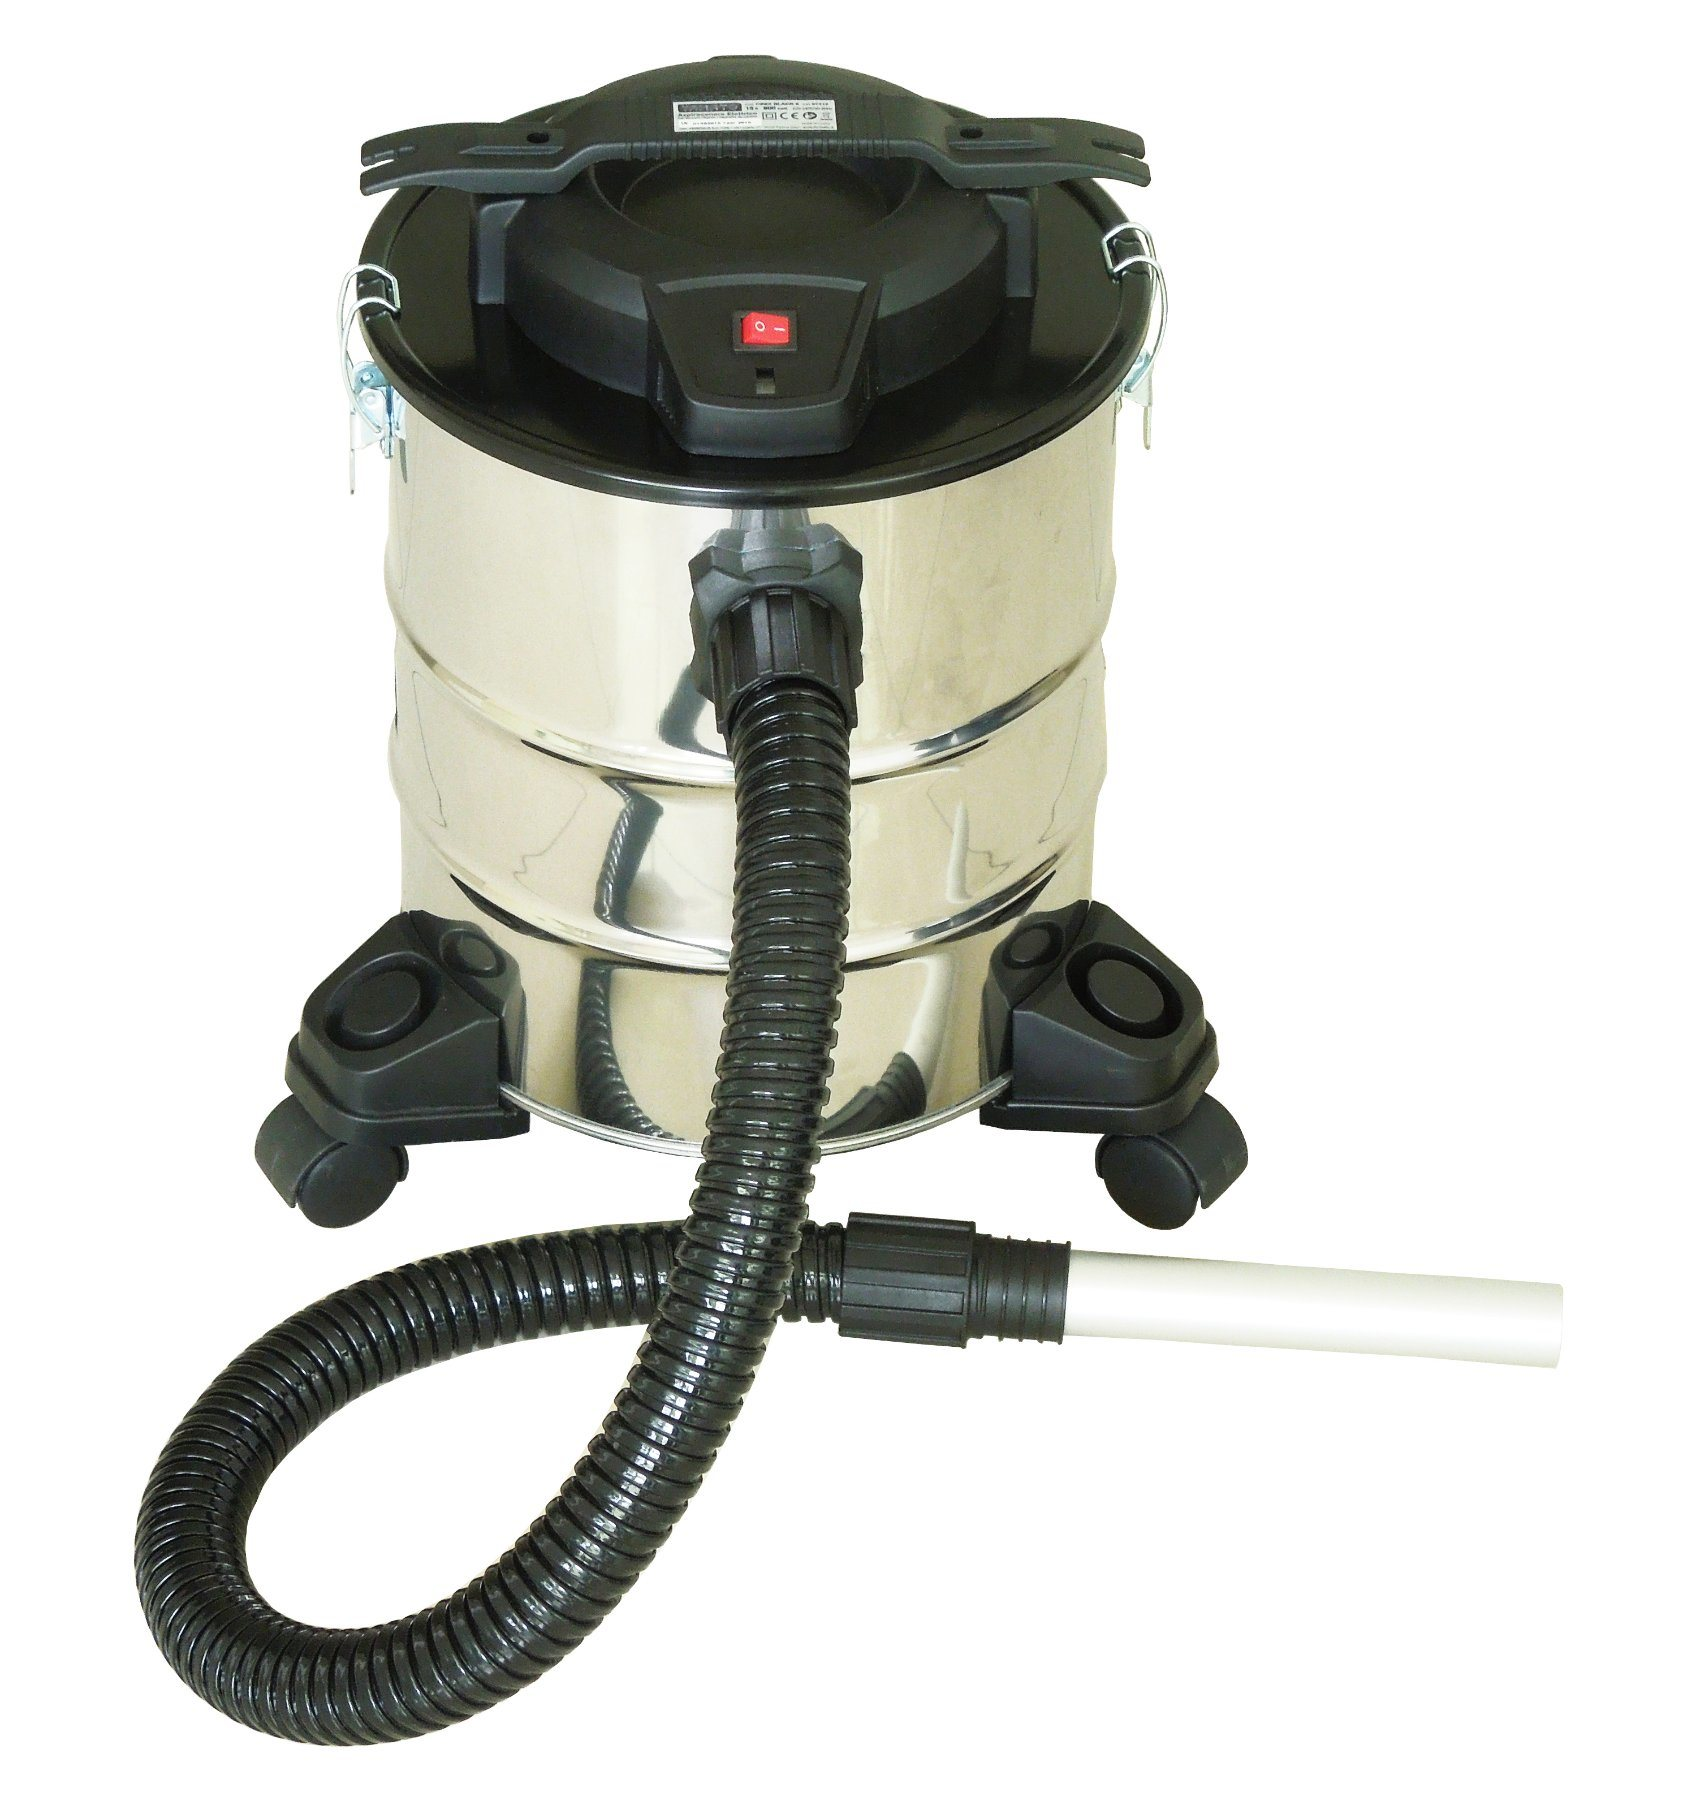 501-23L Electric Dry Dust Fireplace Ash BBQ Ash Vacuum Cleaner with Filling Indicator with or Without Wheelbase